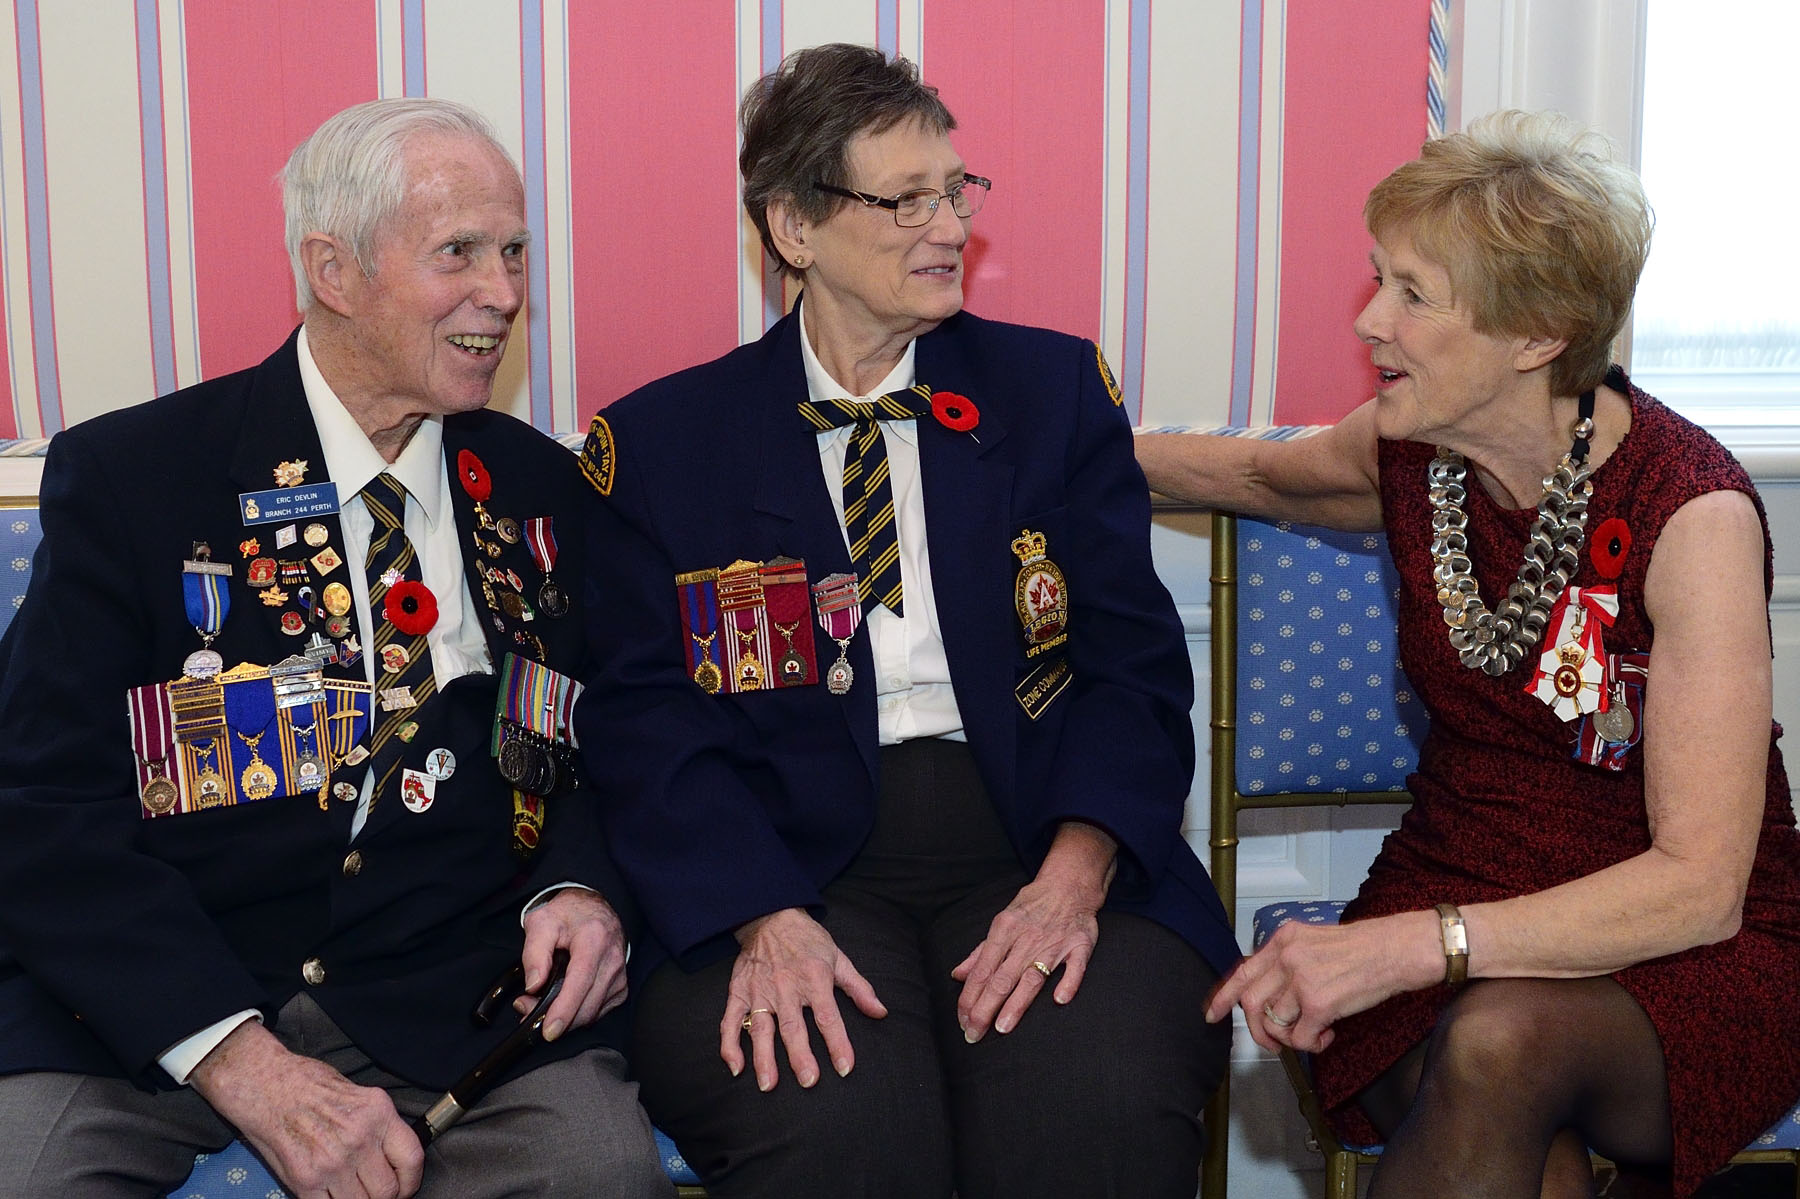 Her Excellency Mrs. Sharon Johnston chatted with members of The Royal Canadian Legion during the reception that followed.